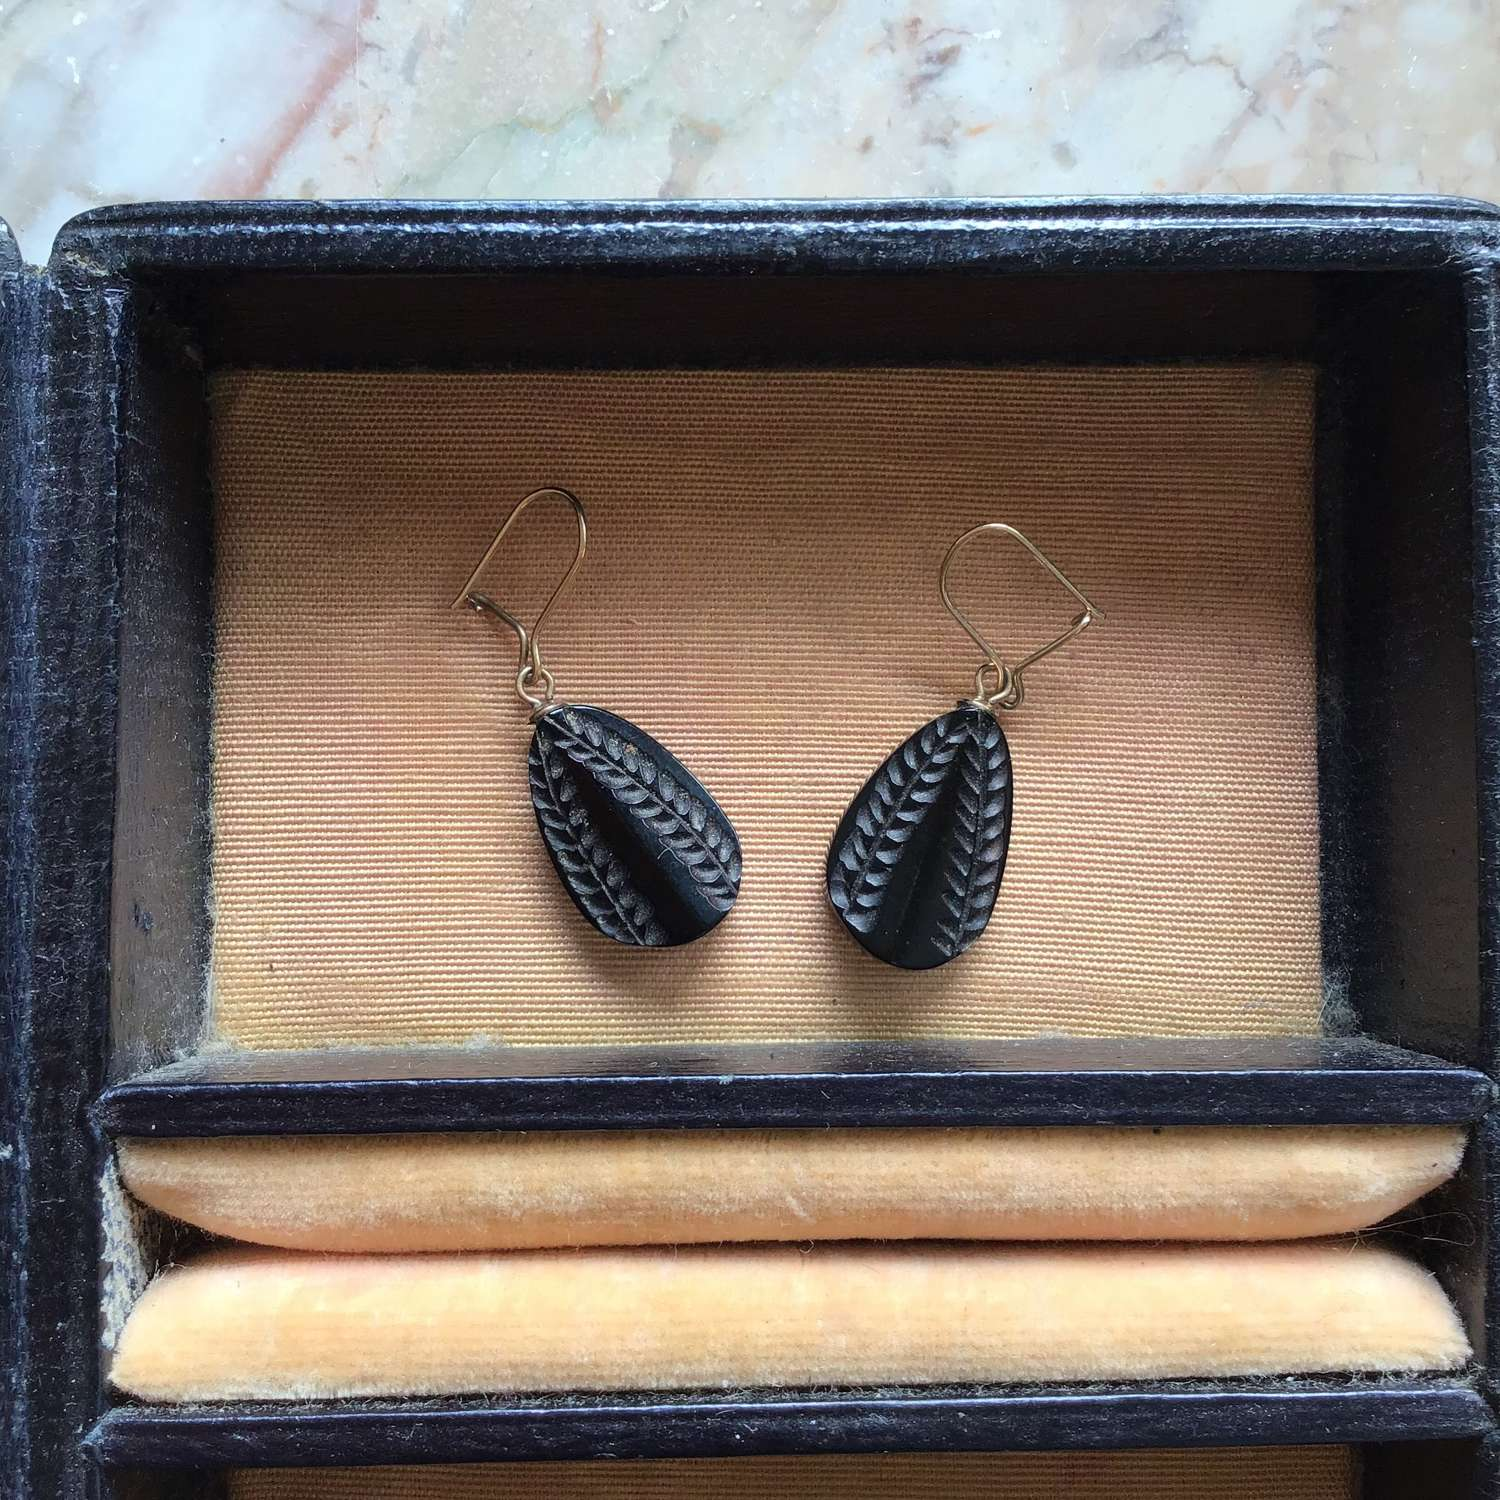 Antique Whitby jet earrings with gold earwires